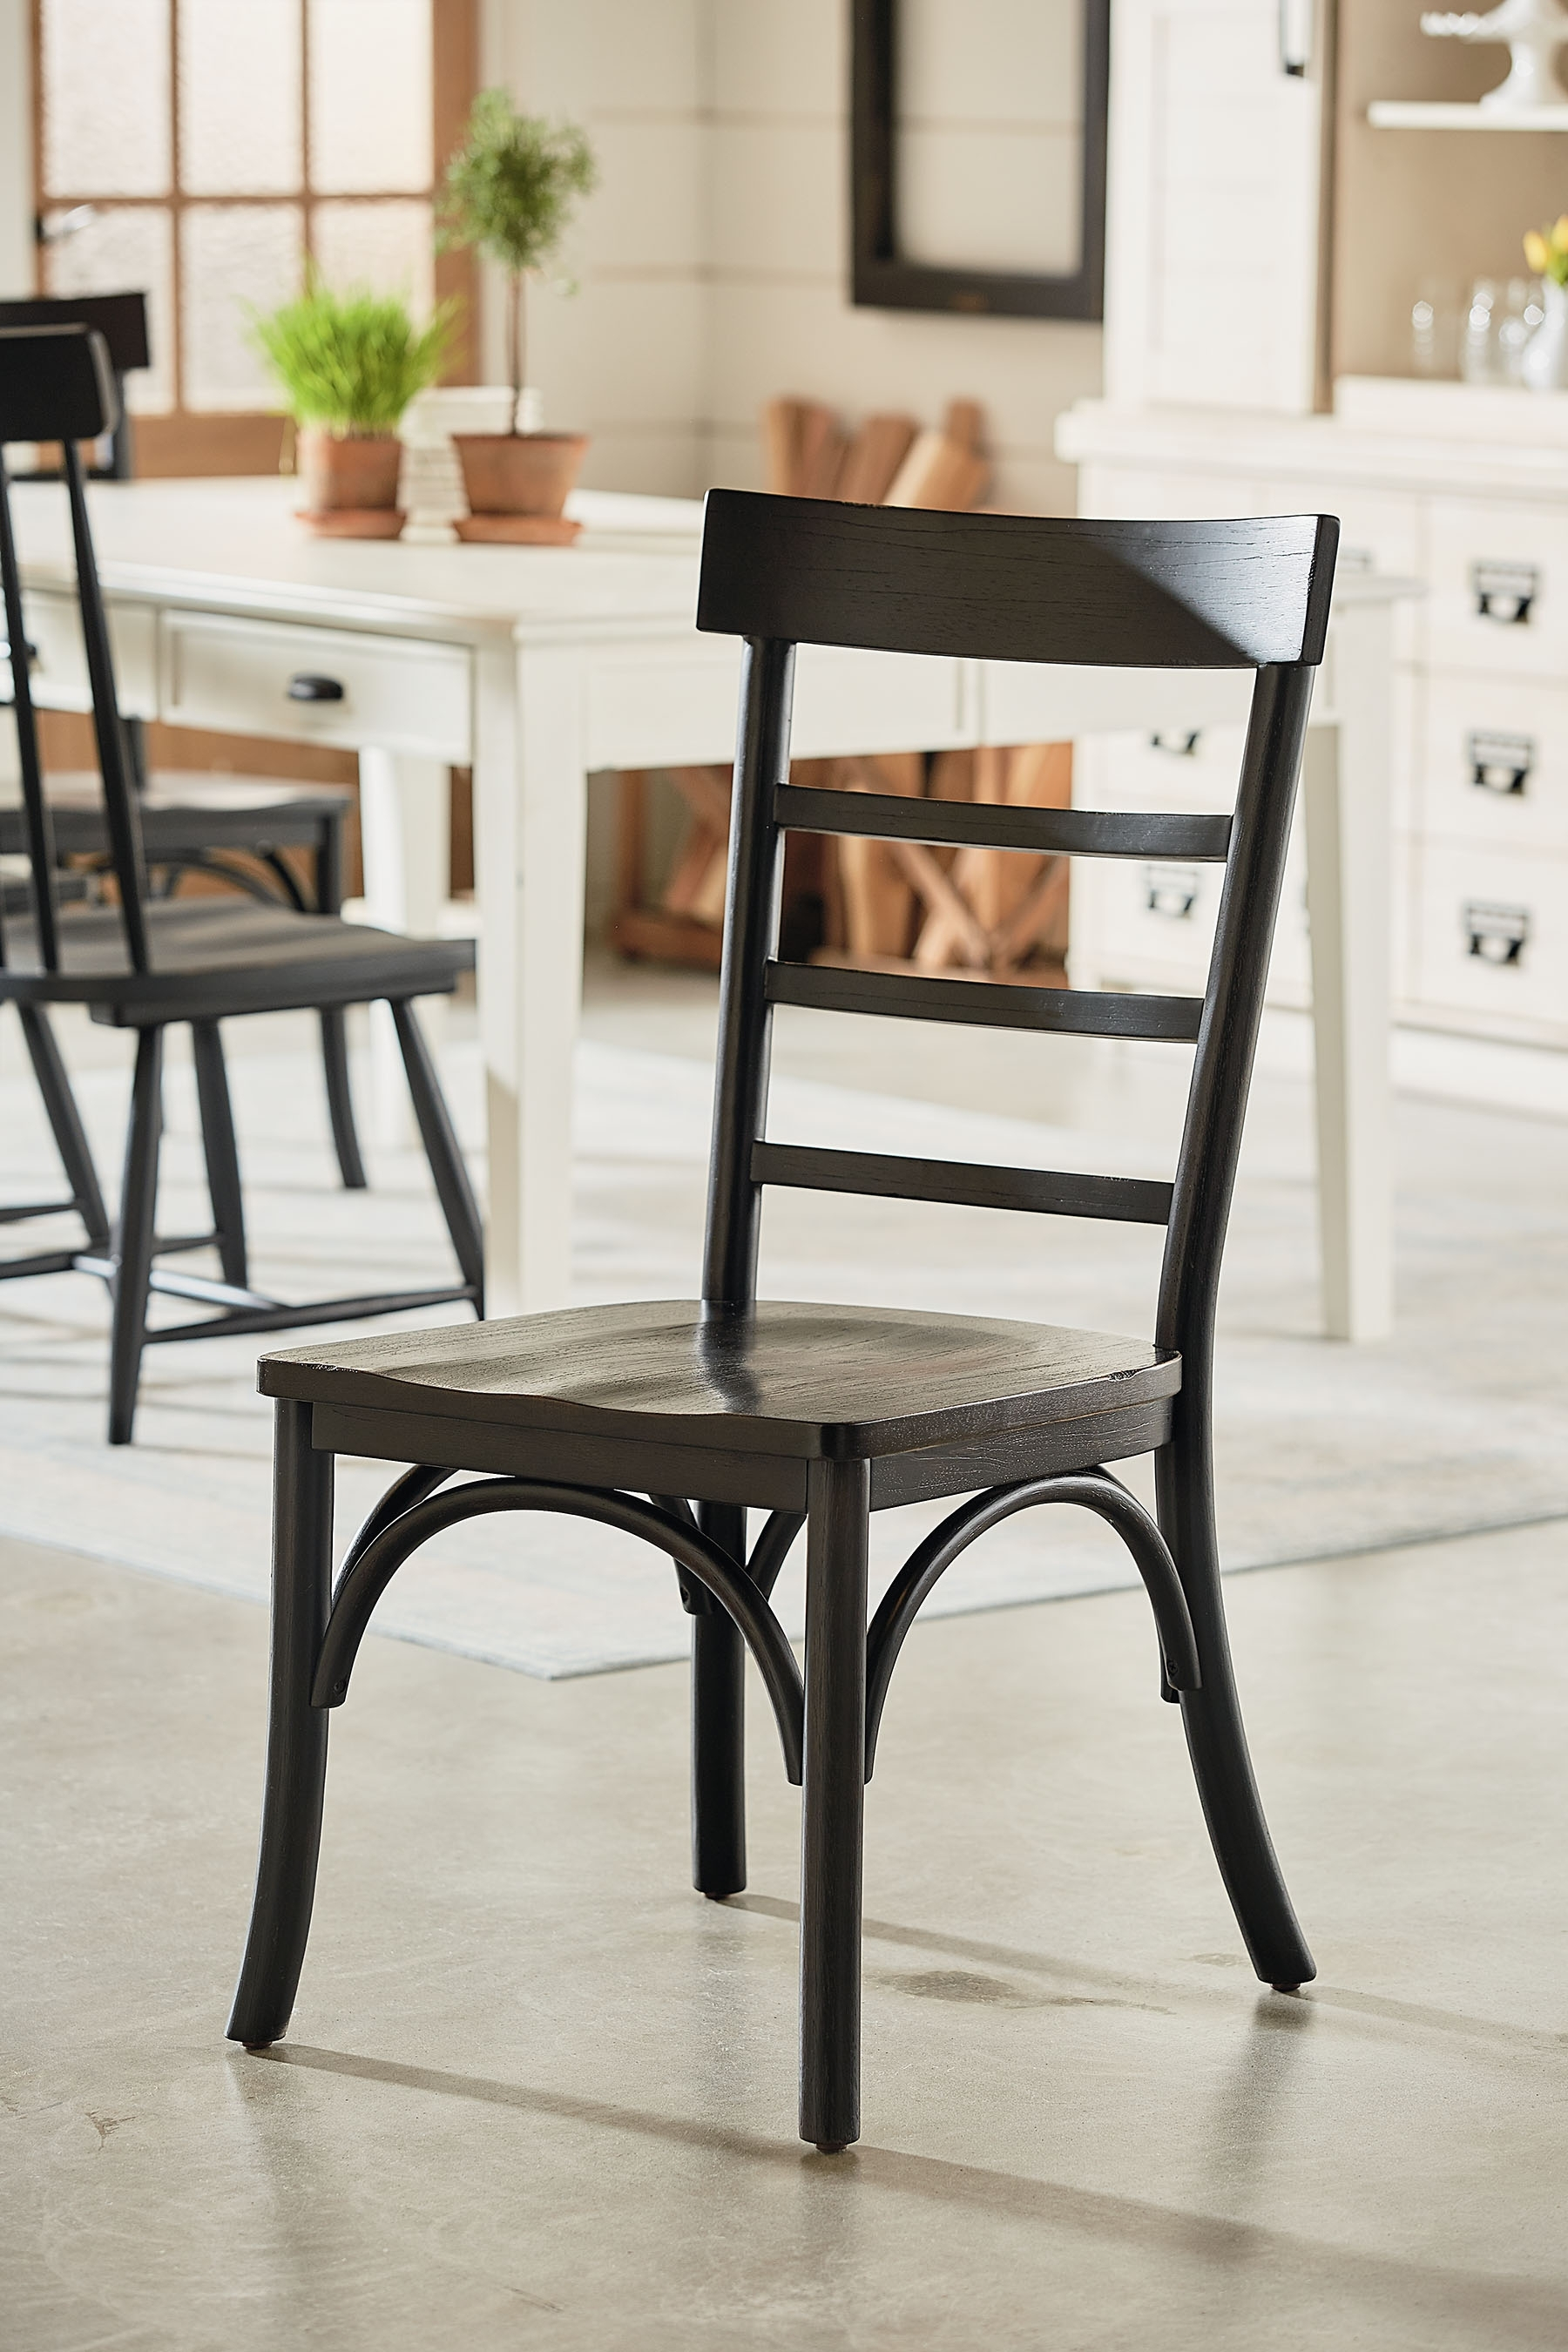 Magnolia Home Harper Chimney Side Chairs Pertaining To Preferred Harper Side Chair – Magnolia Home (View 5 of 20)